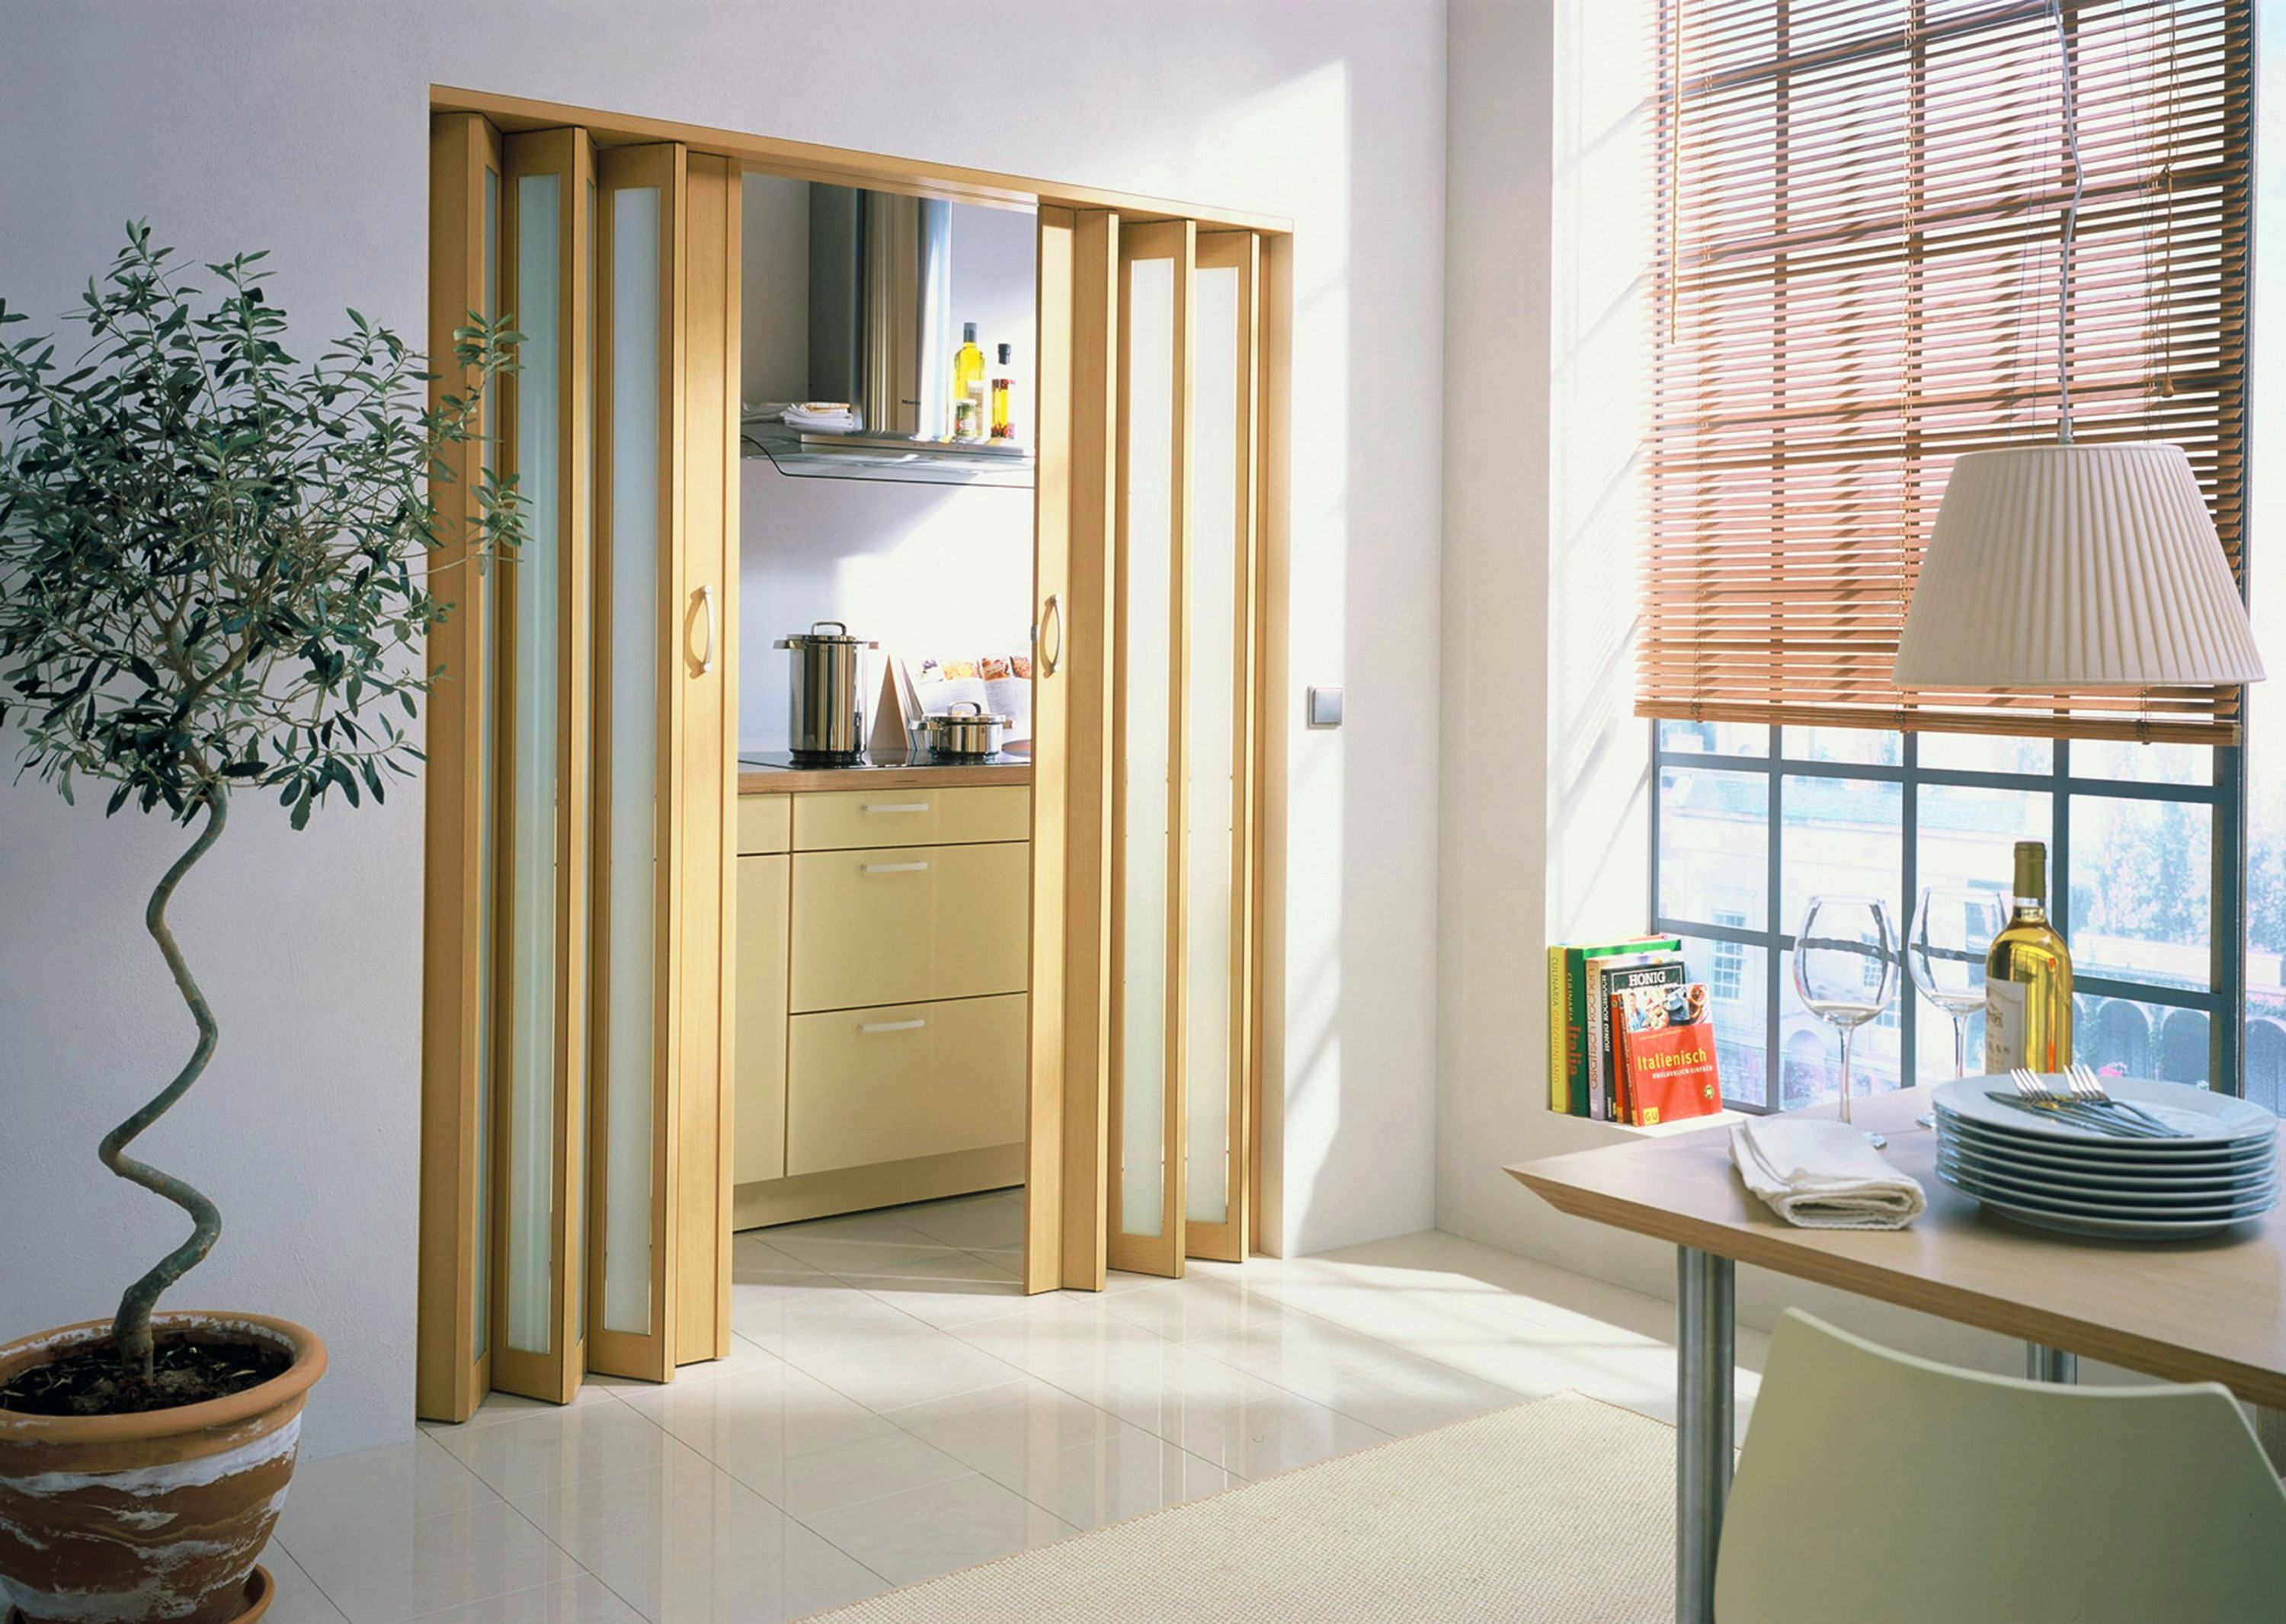 Accordion Doors: Transform Your Office Spaces, Bathrooms, Closets, Garages and More! #design